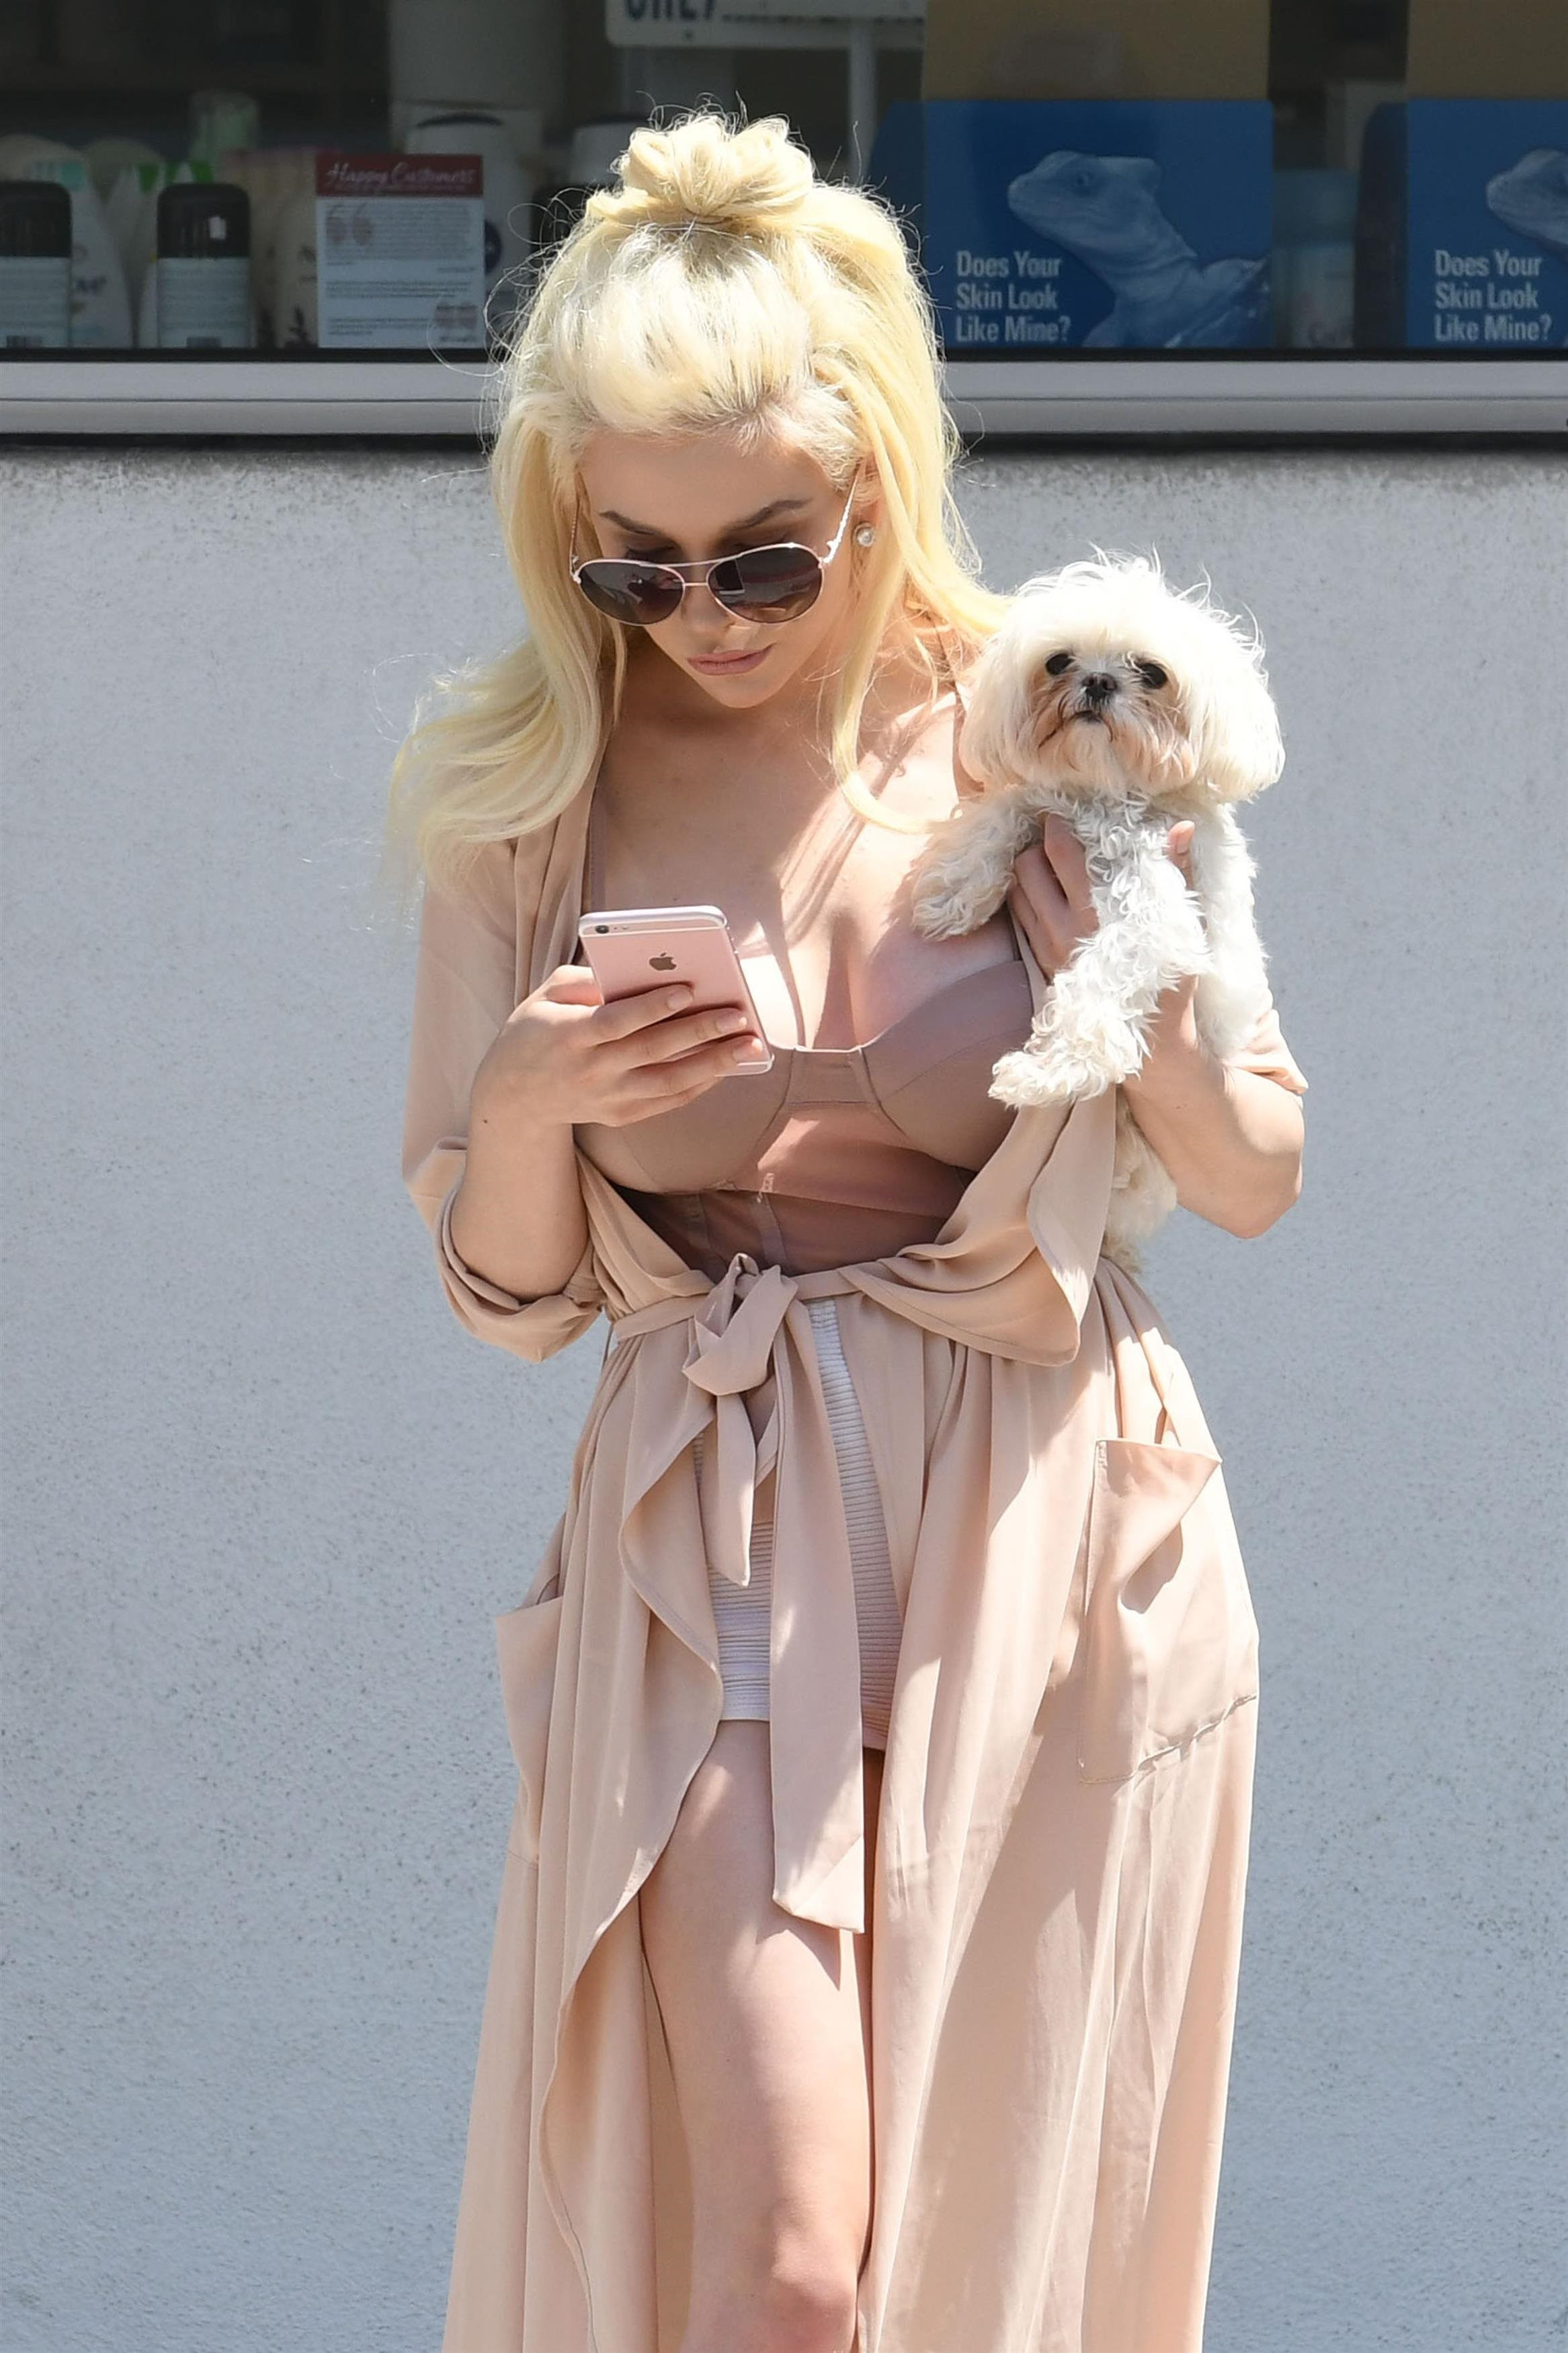 Courtney Stodden and her puppy were seen waiting for an Uber while out in Los Angeles on June 30, 2017.